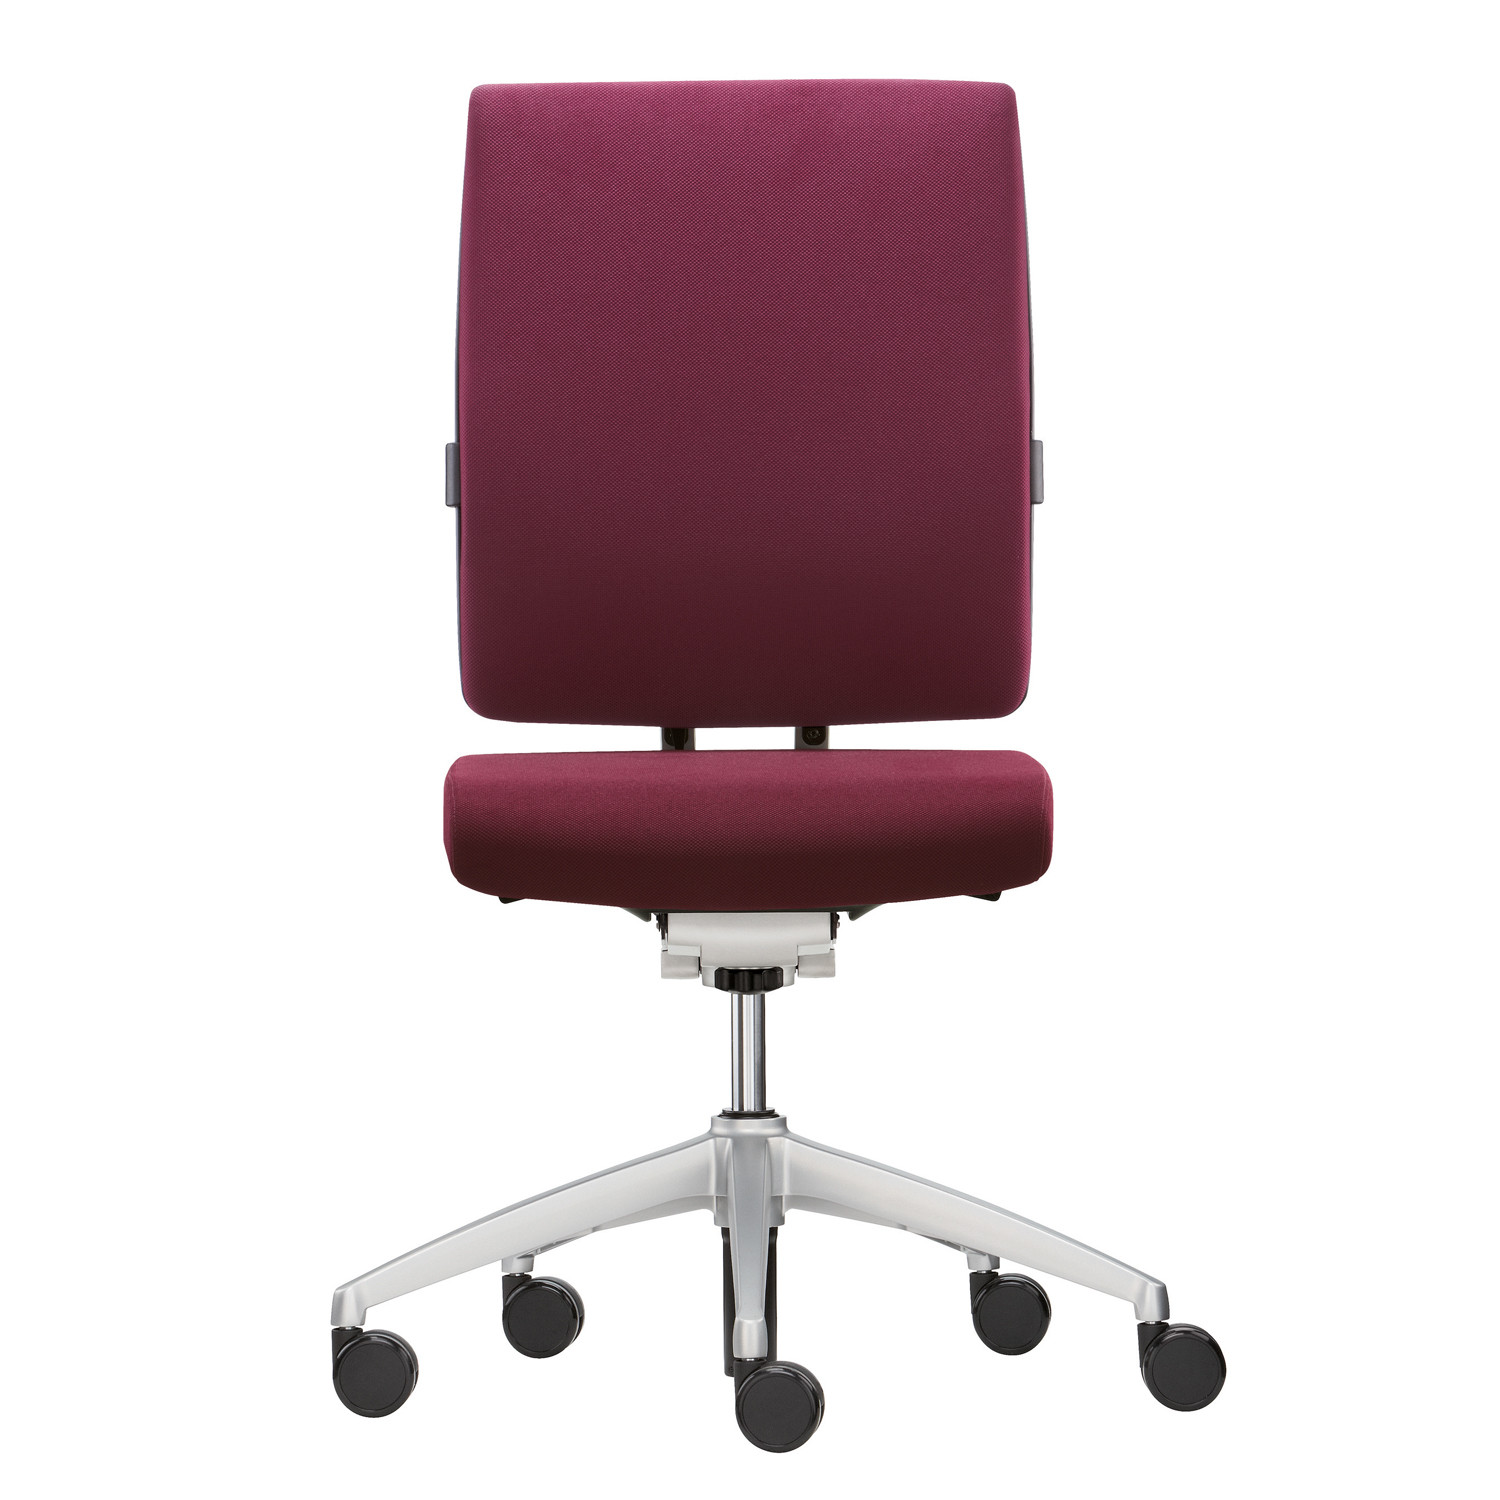 Too Office Chair without armrests